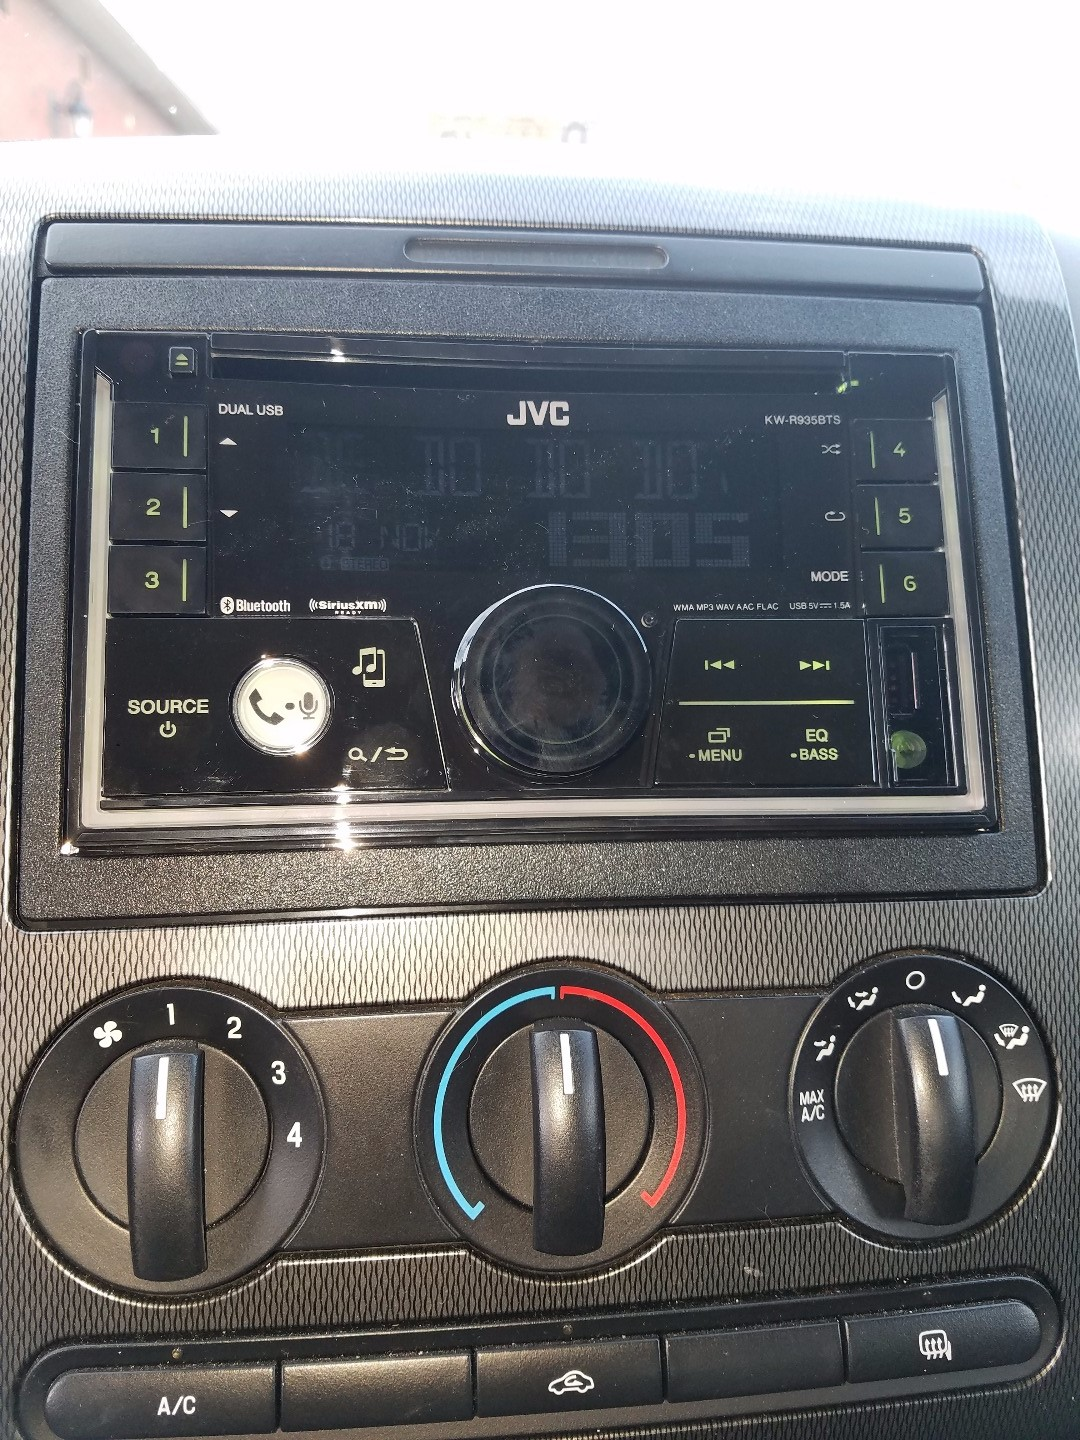 JVC KW-R935BTS CD receiver at Crutchfield